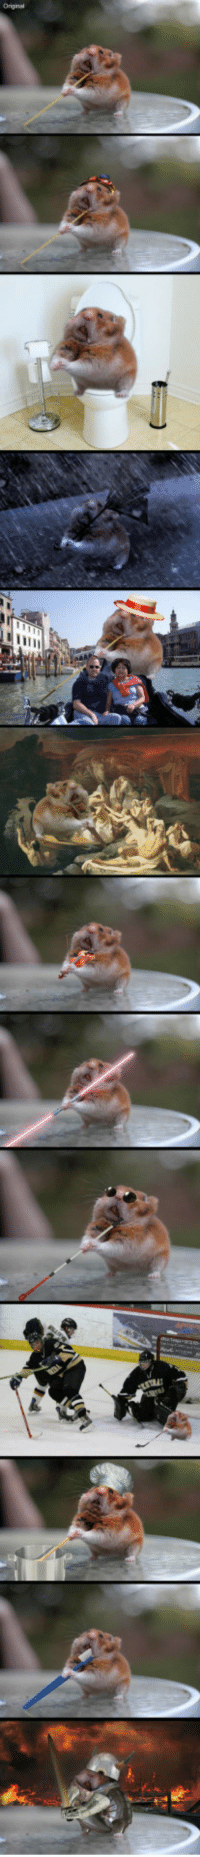 <p>Just A Day In The Life Of Spaghetti Hamster.</p>: <p>Just A Day In The Life Of Spaghetti Hamster.</p>